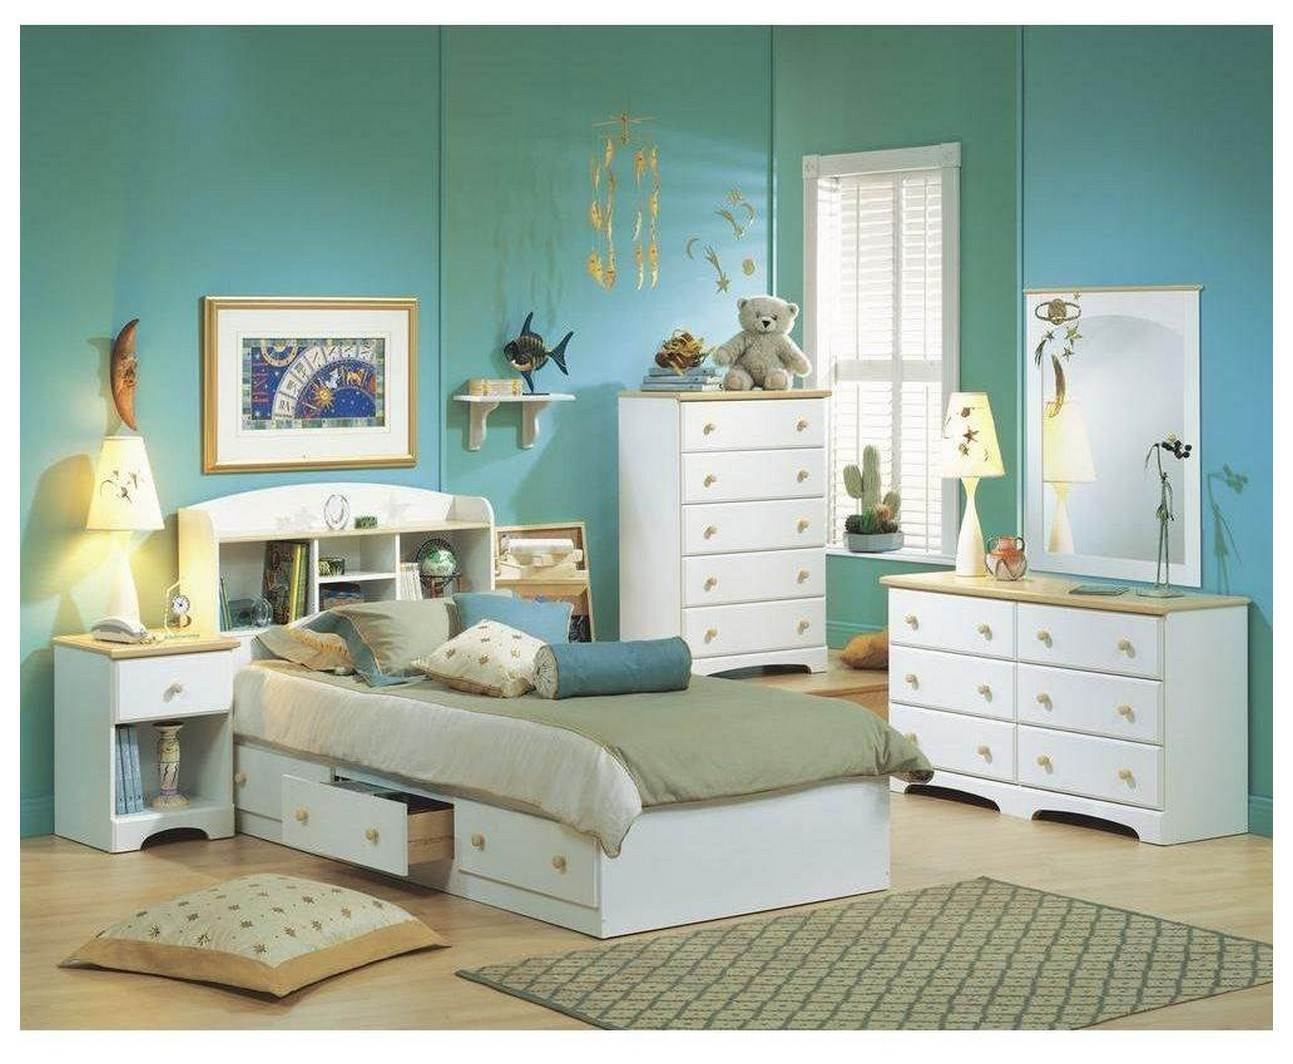 Image of: Ikea Hopen 6 Drawer Dresser Kids